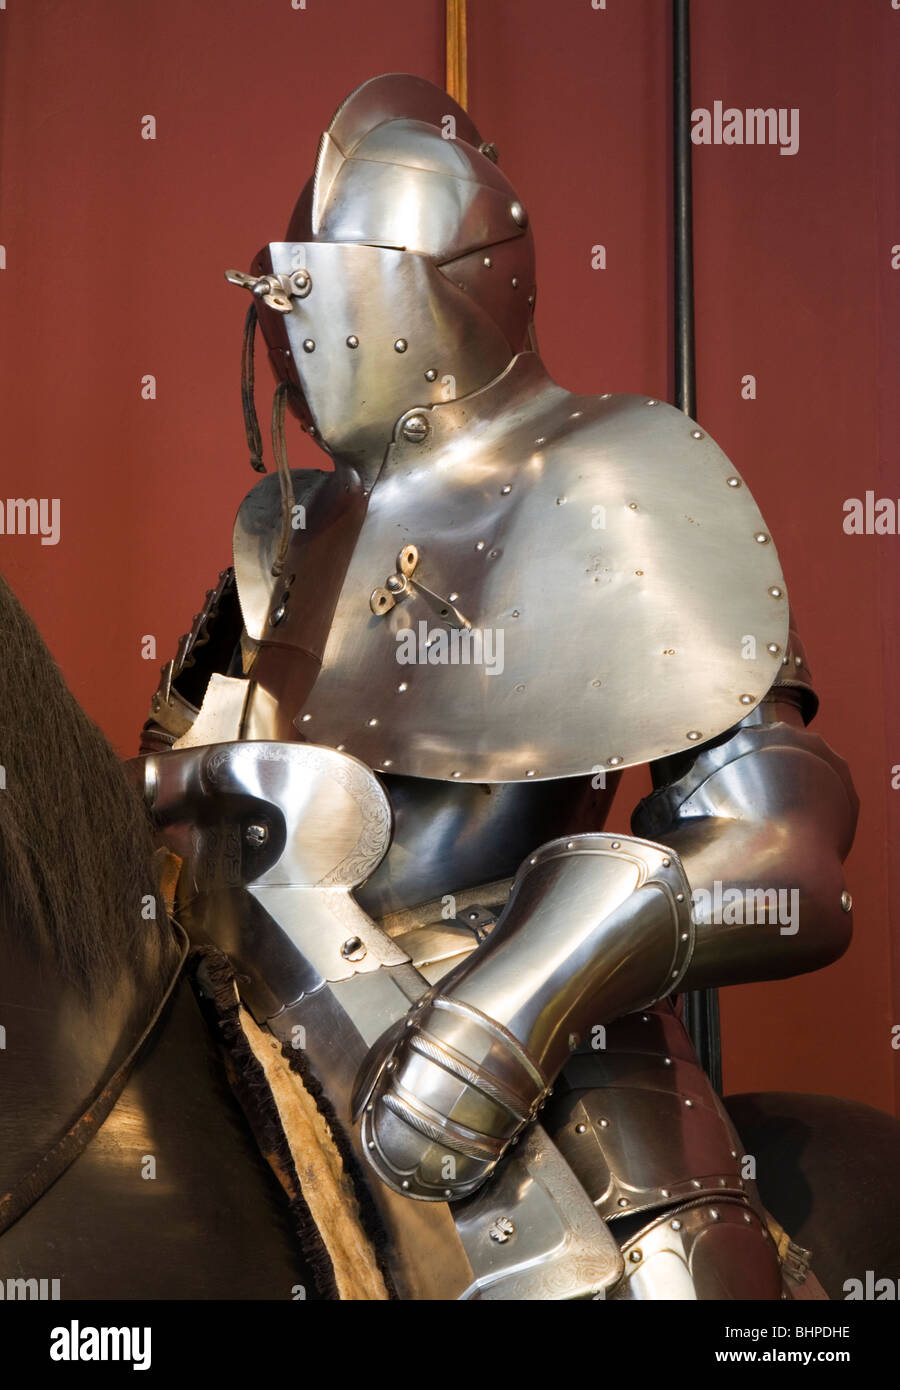 Classic Medieval Full Suit of Armor. - Stock Image